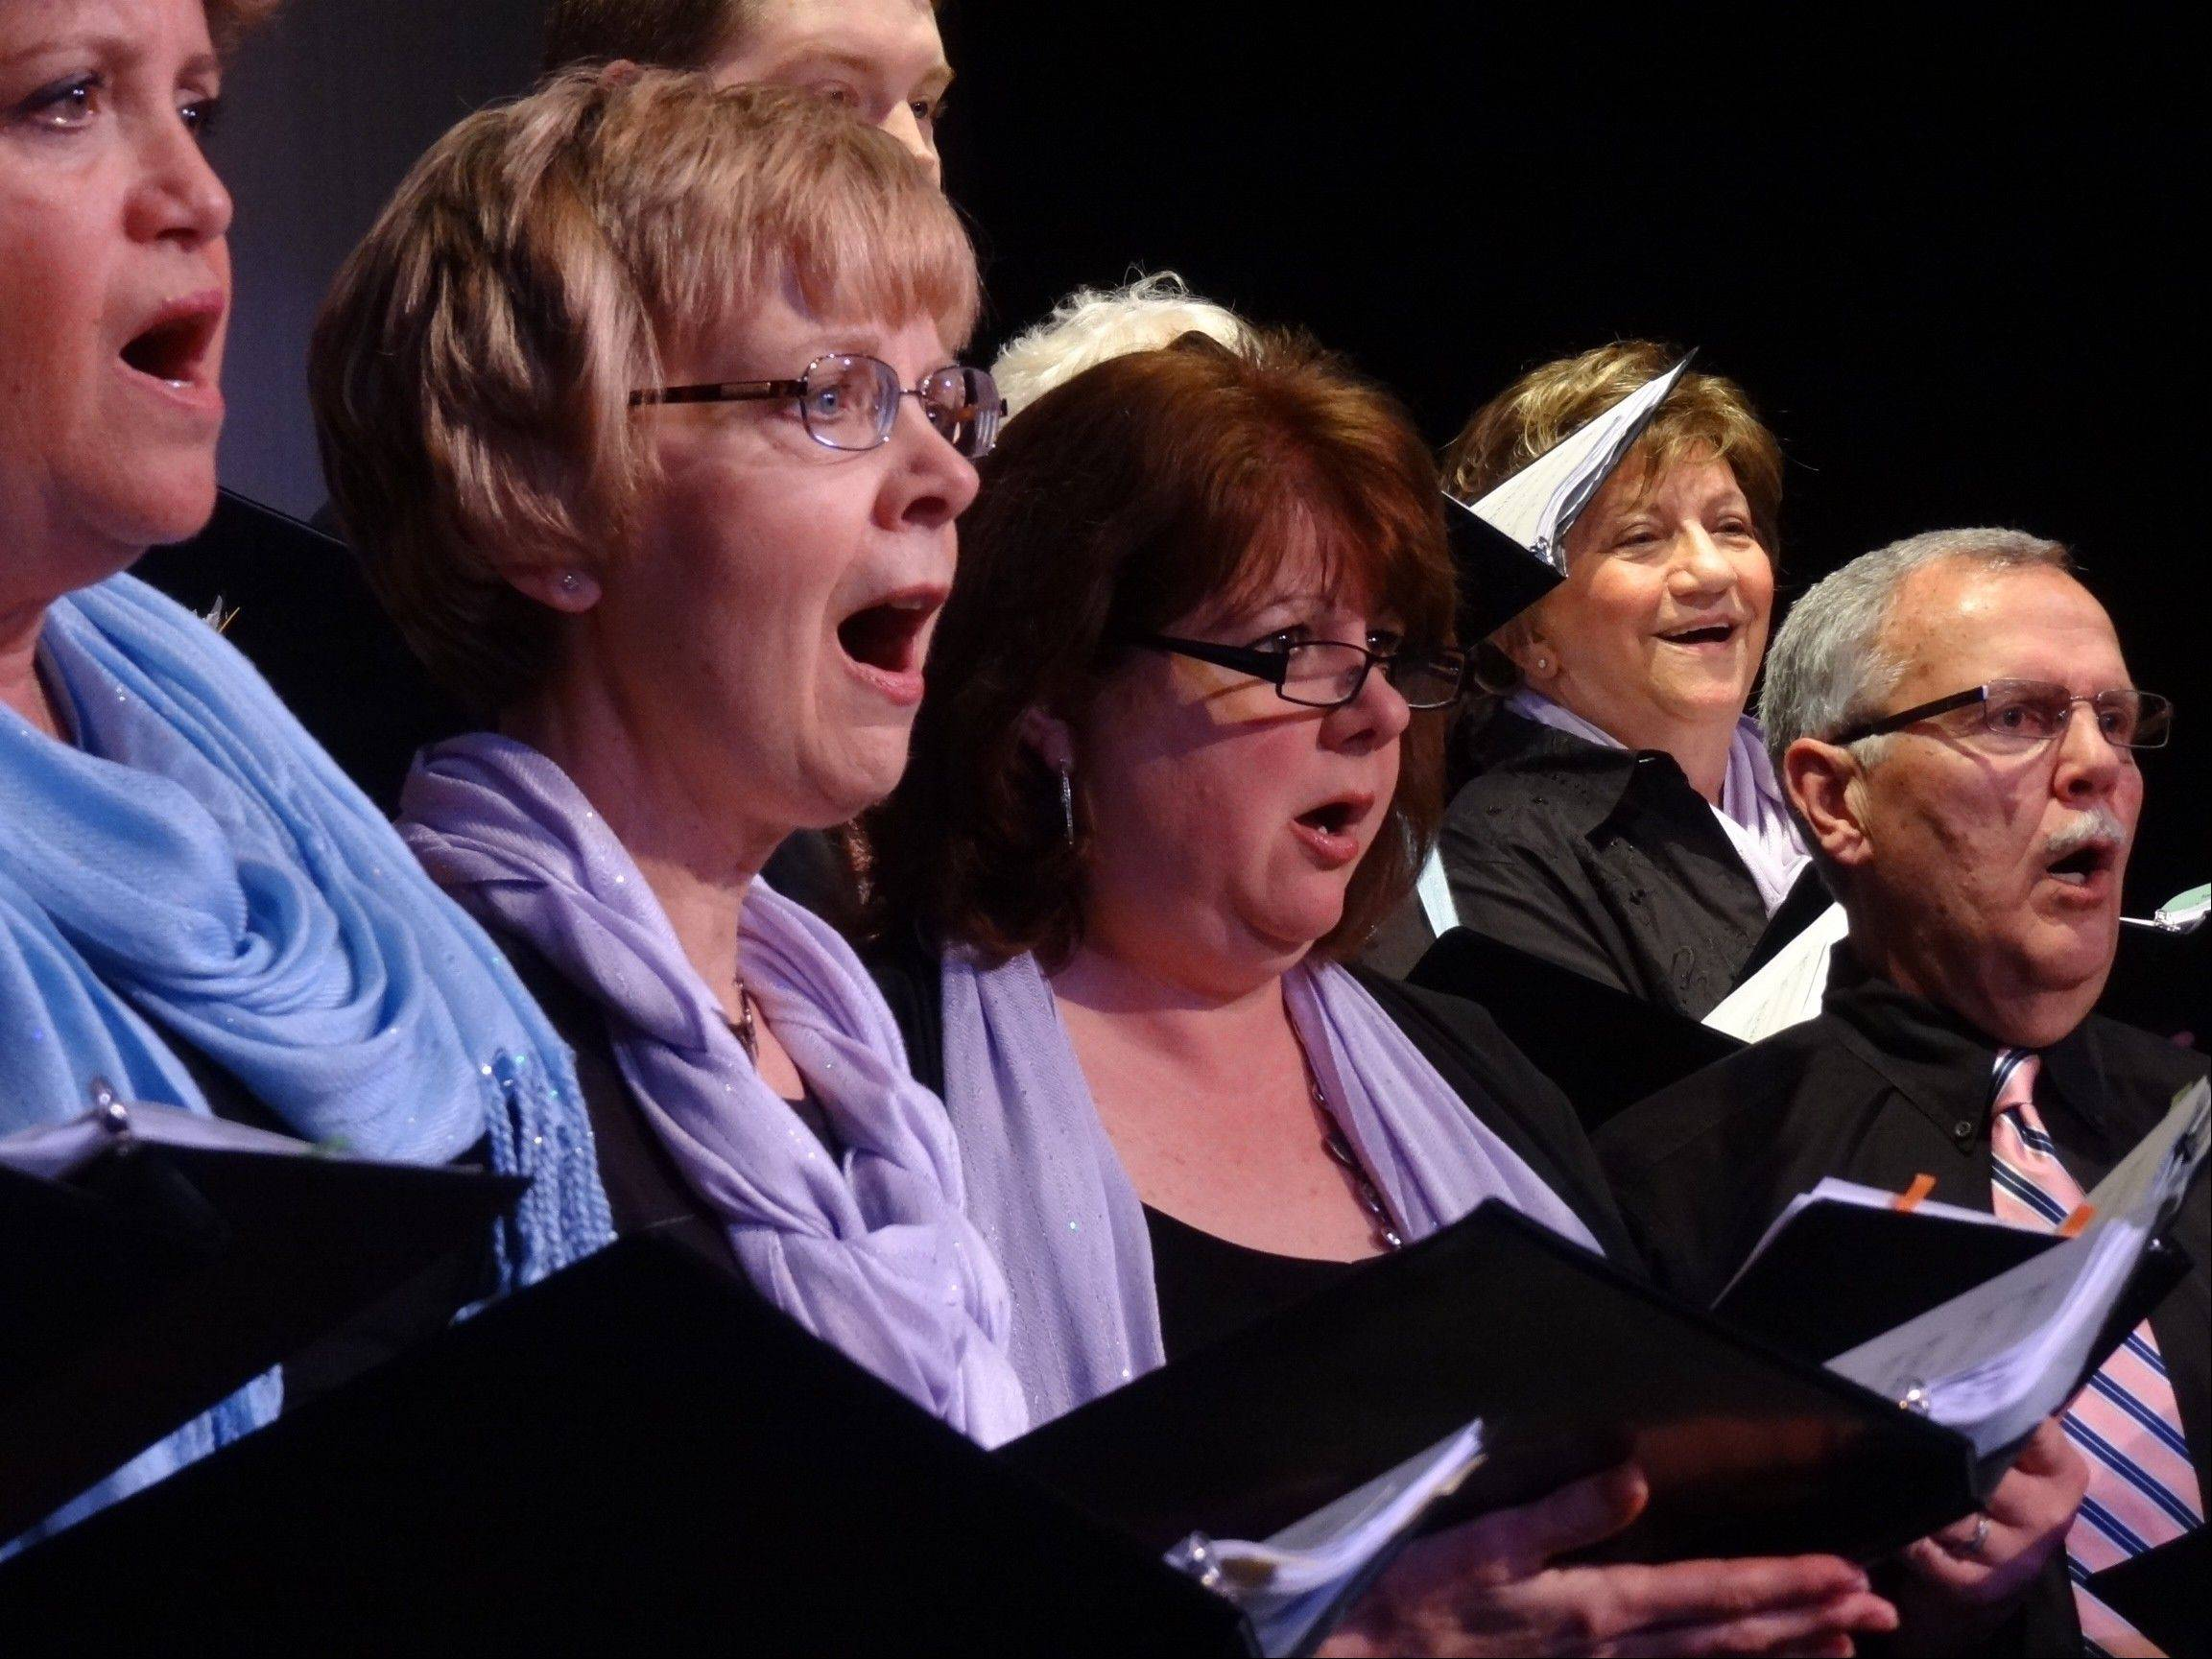 Palatine Park District's Allegro Adult Choir presents its annual holiday concert 6:30 p.m. Sunday, Dec. 2, at Cutting Hall Performing Arts Center.